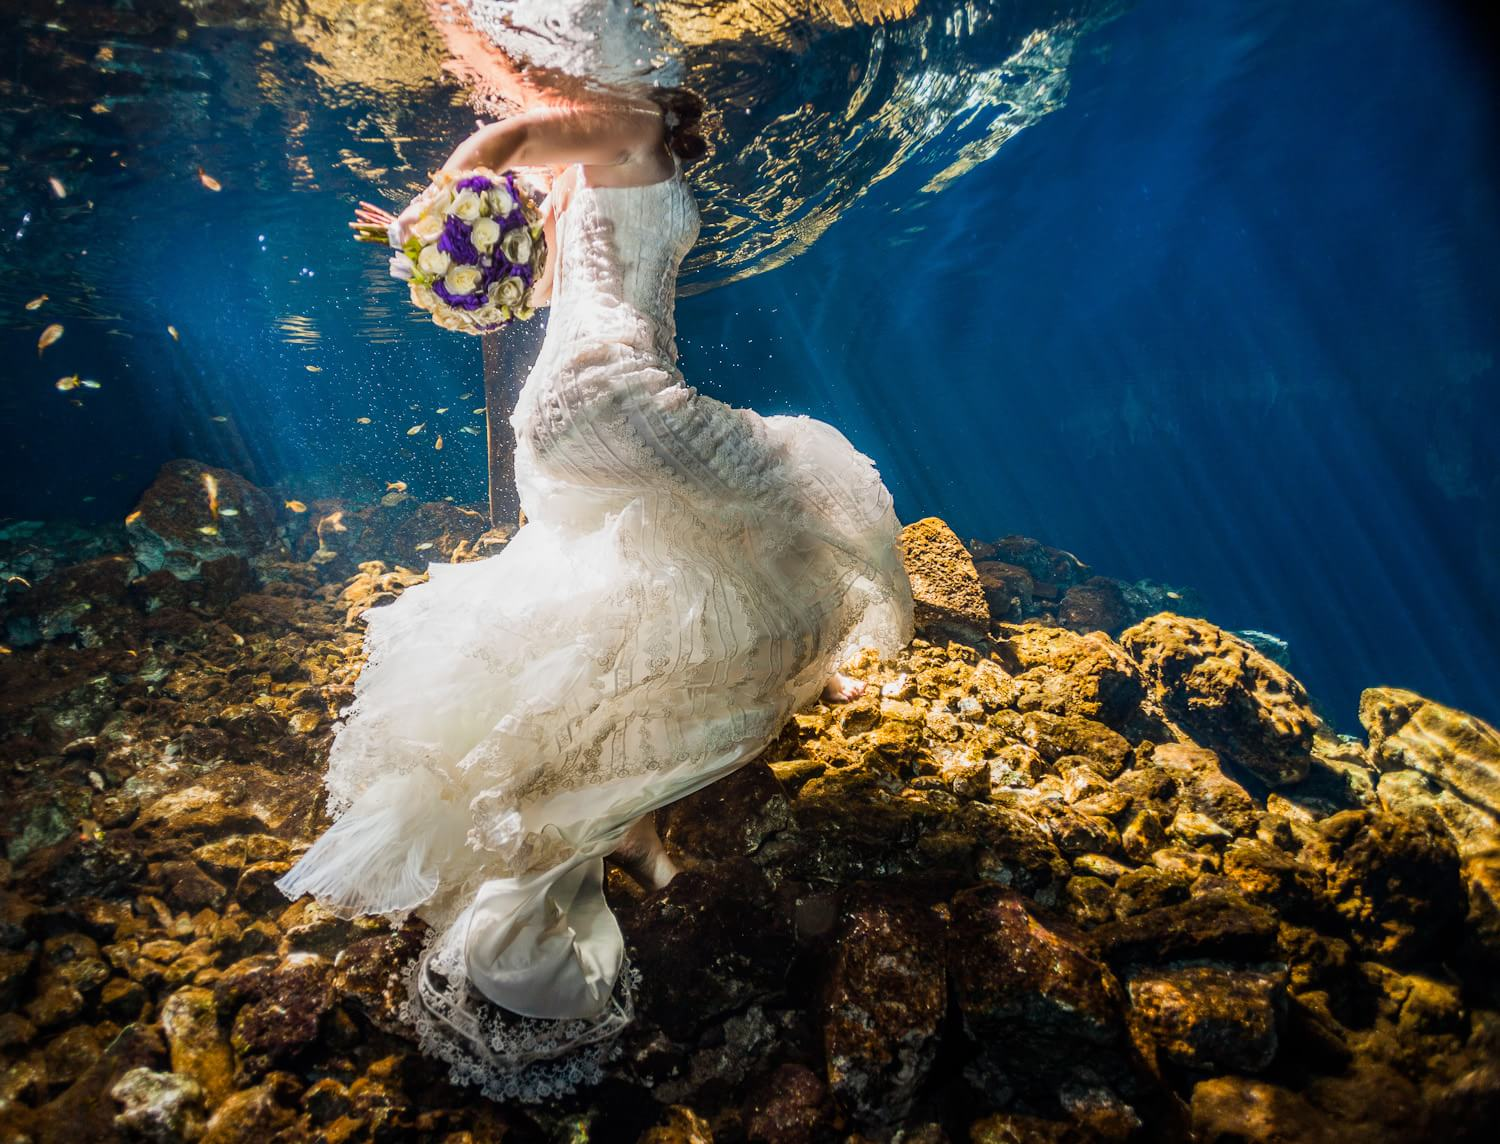 Wedding dress in underwater trash the dress mayan Riviera